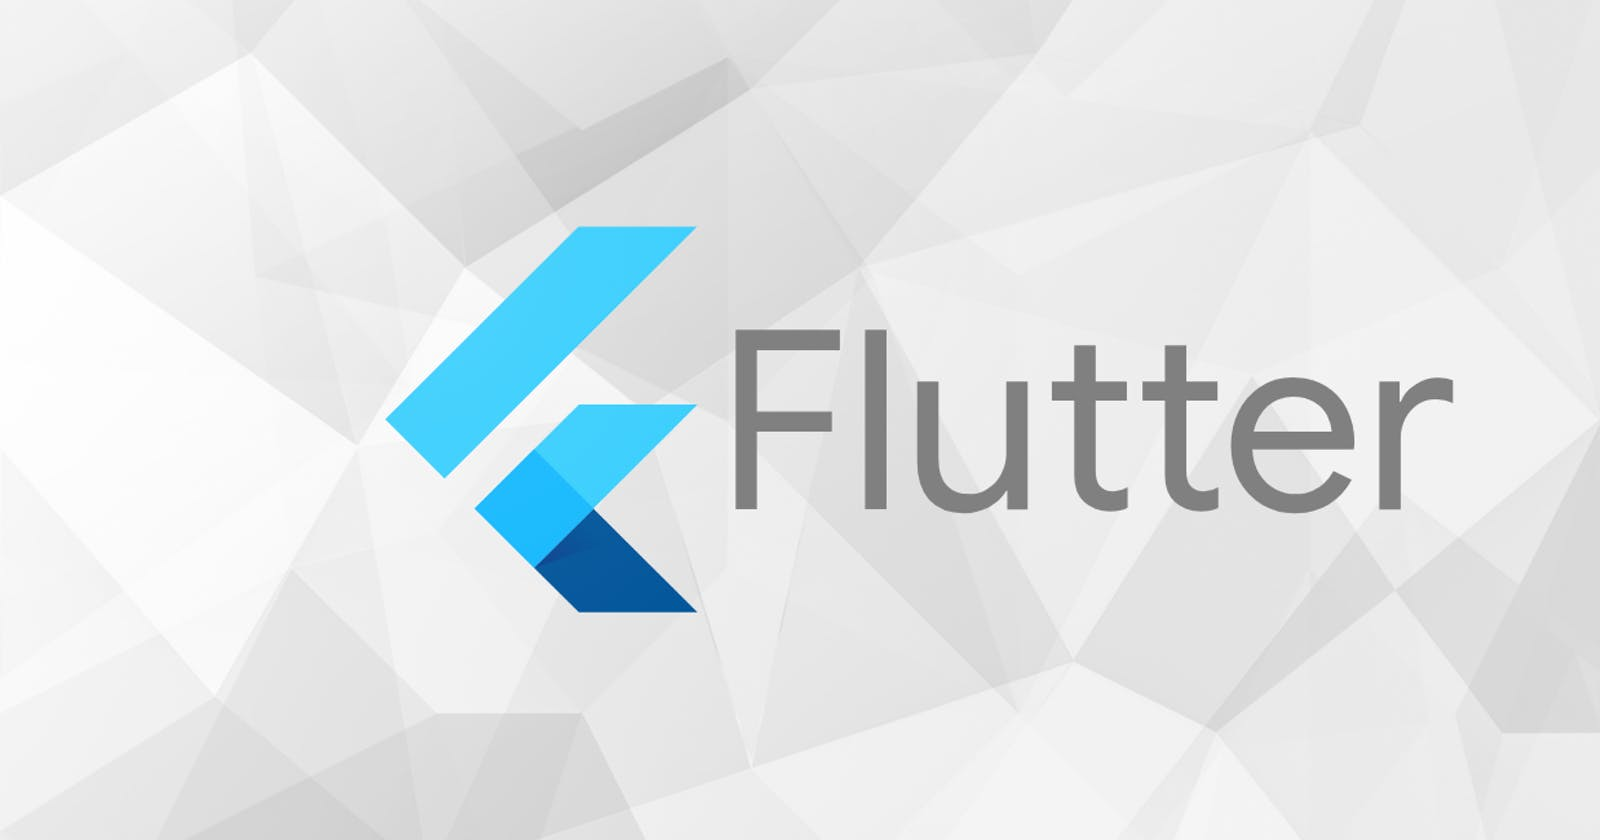 #Flutter: Stateful | Animated Container | Future delay